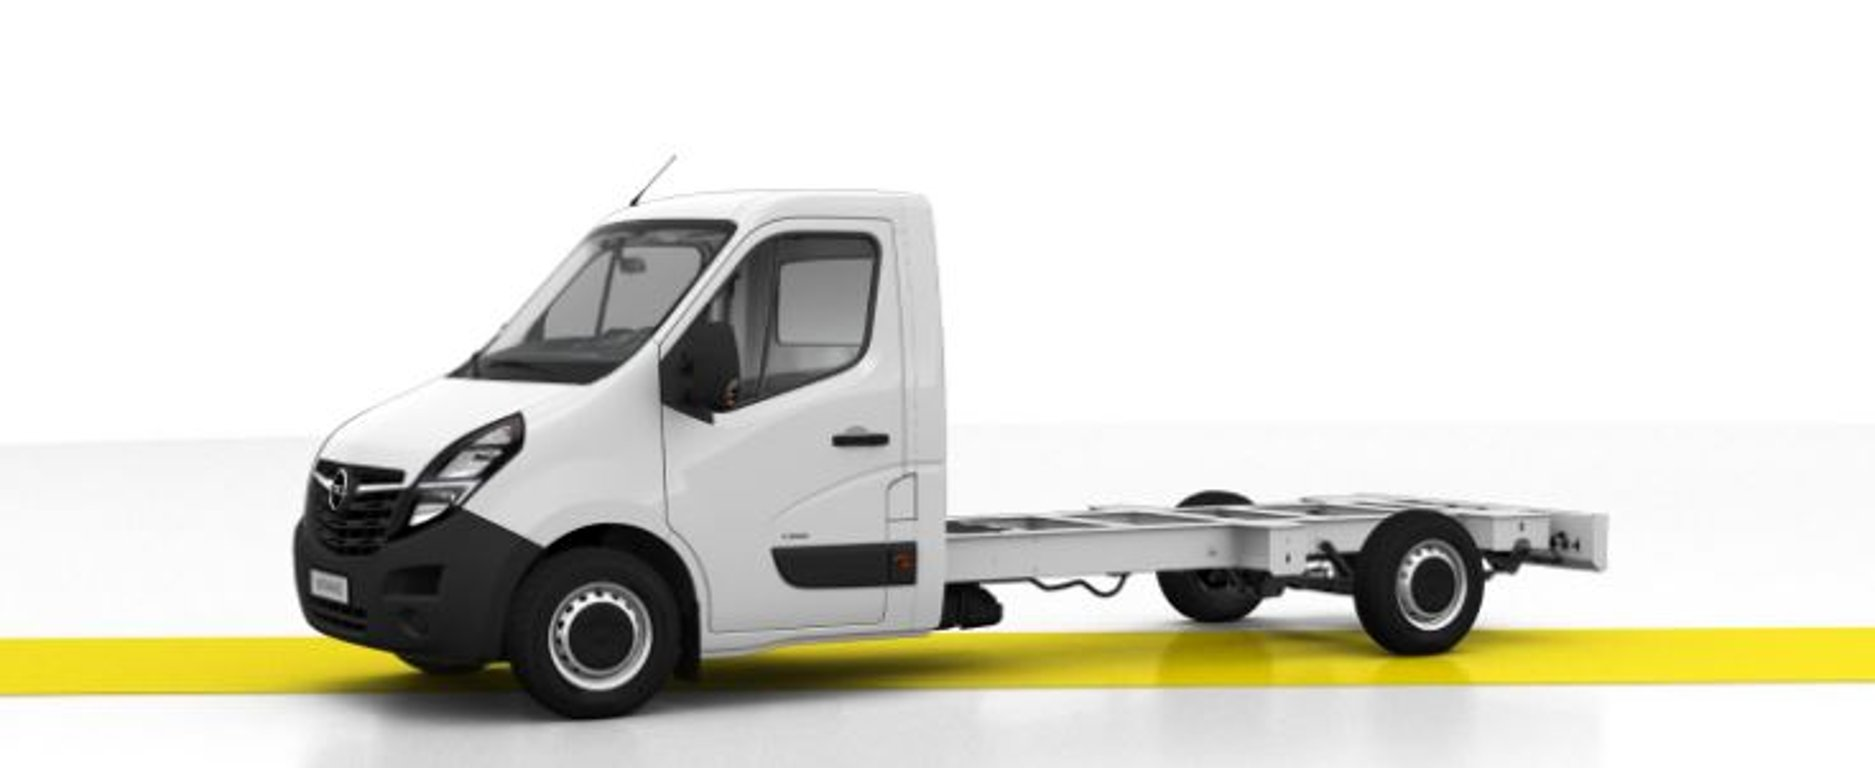 Opel Movano Chassis Cab L3H1 3500 FWD-SRW